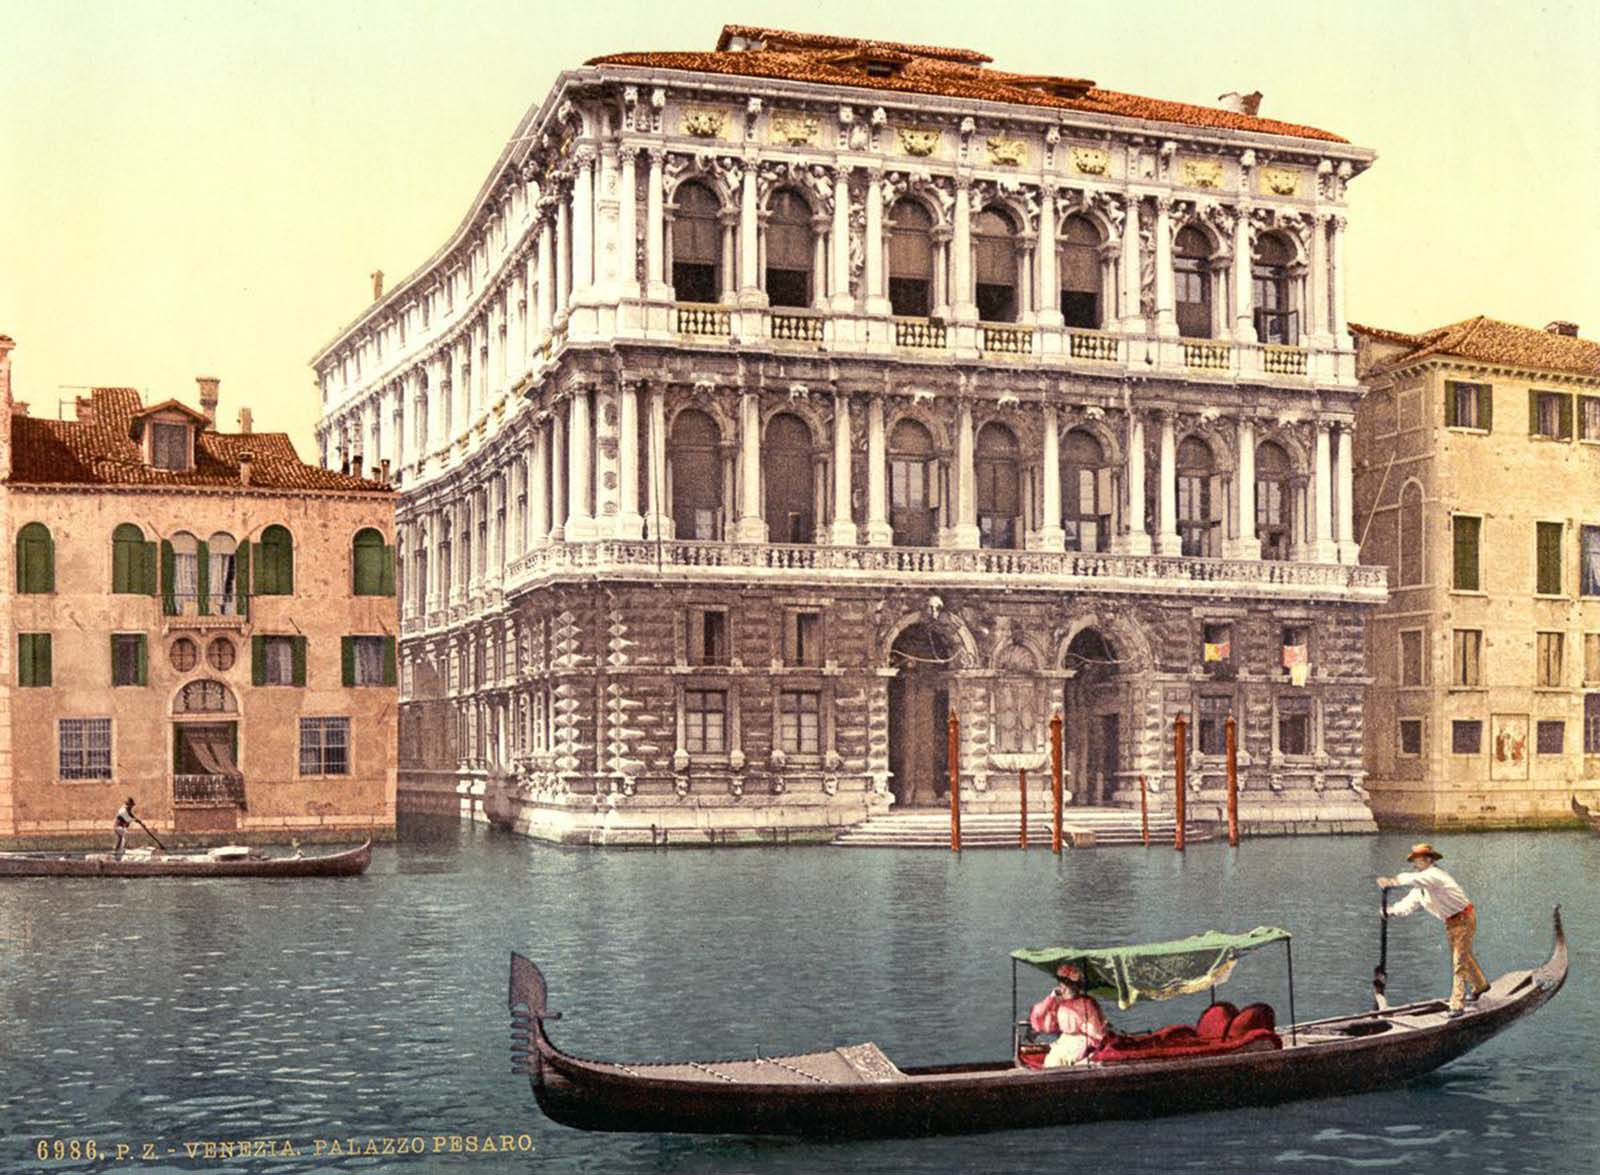 Pesaro Palace on the Grand Canal.